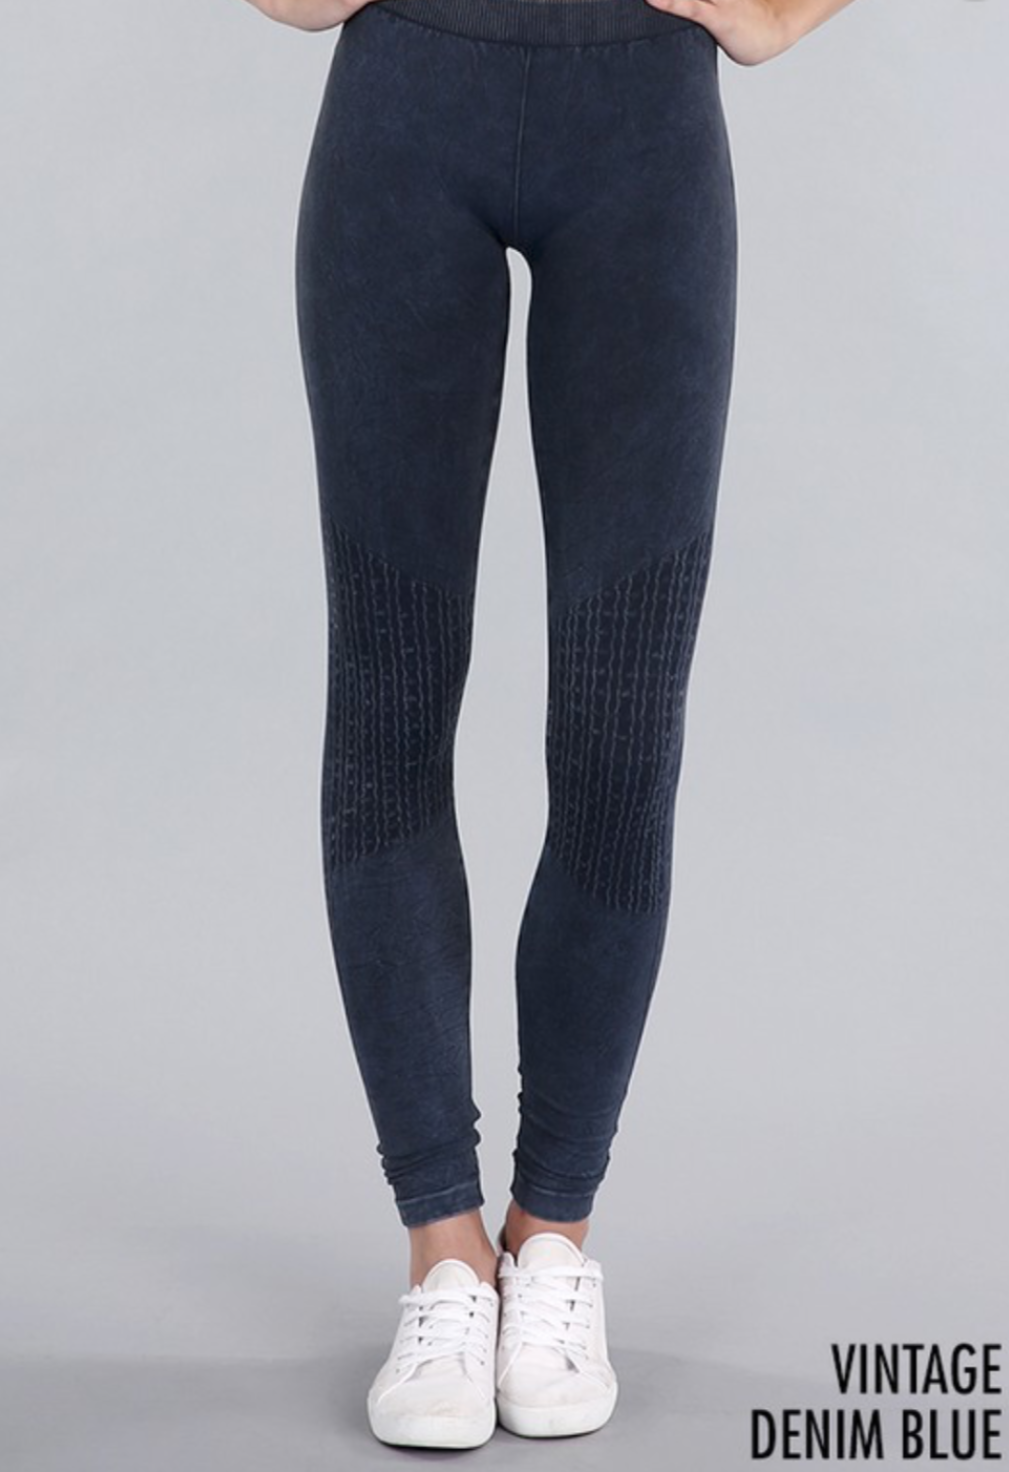 Vintage Leggings - Denim Blue